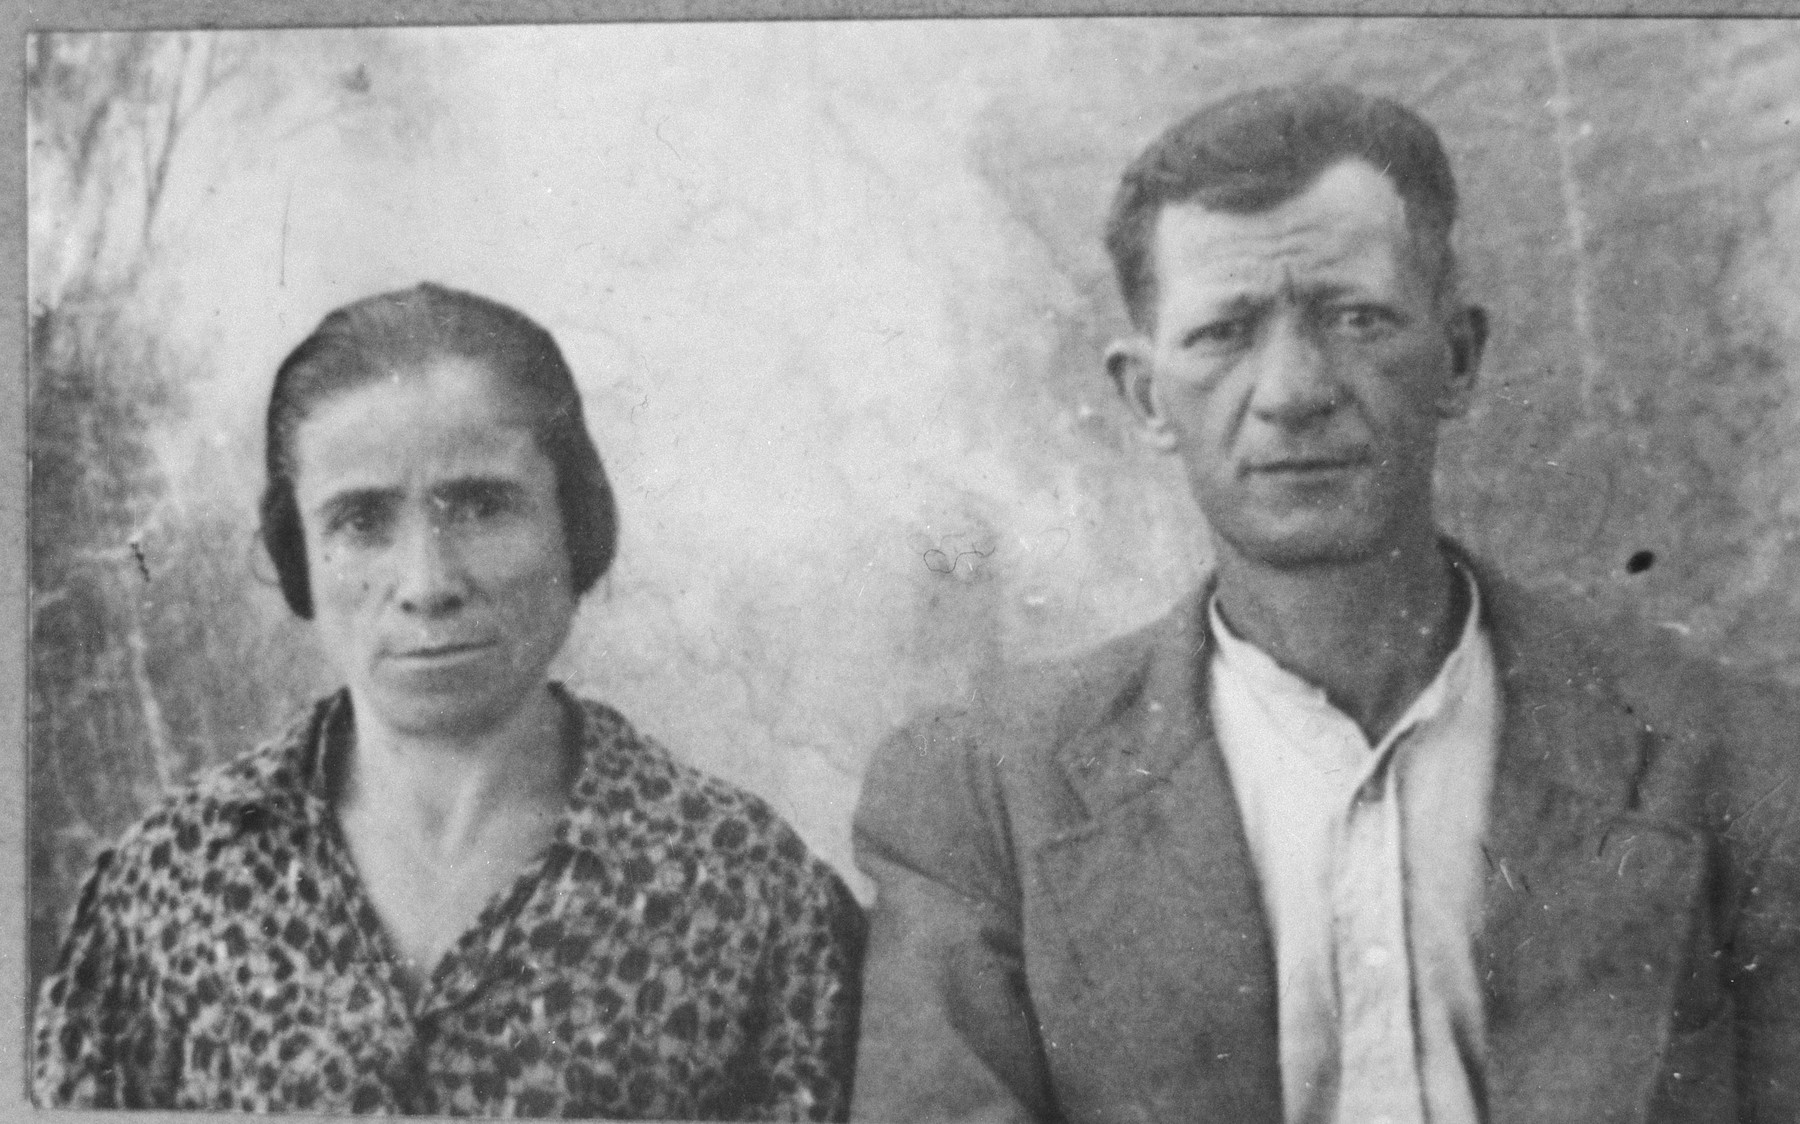 Portrait of Yosef (I.) Pardo and his wife, Sara.  They lived at Kossantchitcheva 9 in Bitola.